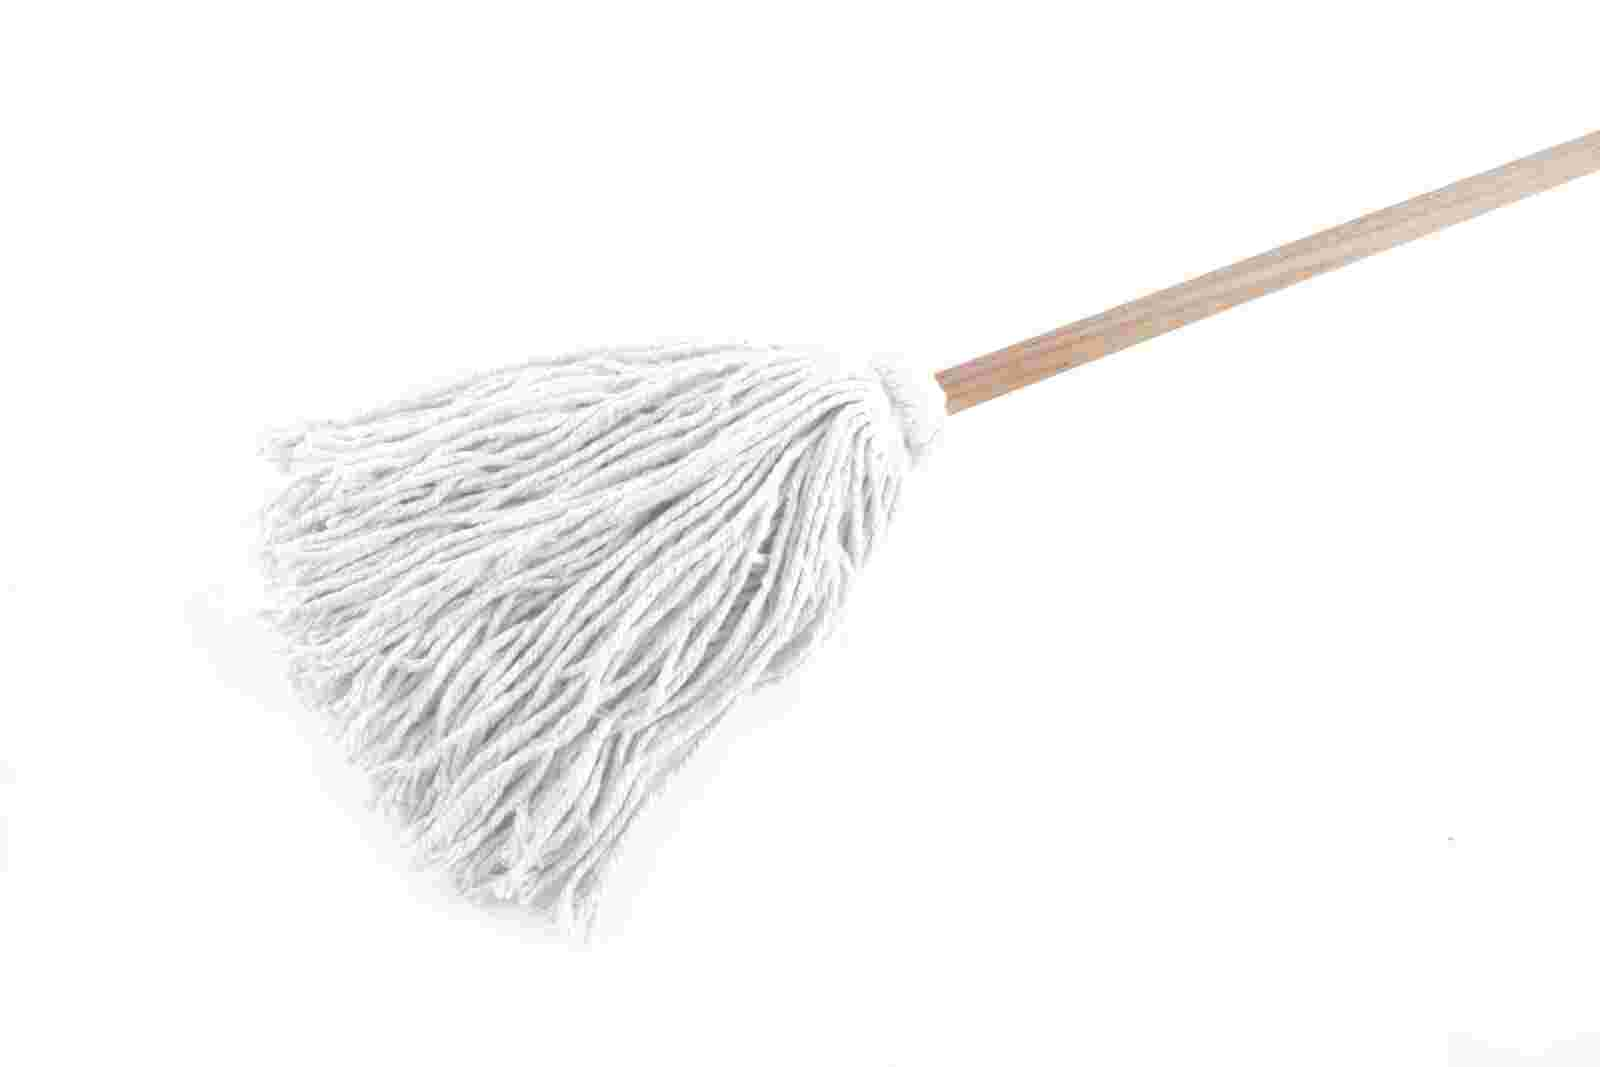 Mop : Connecticut man is facing charges after police said he grabbed a mop ...